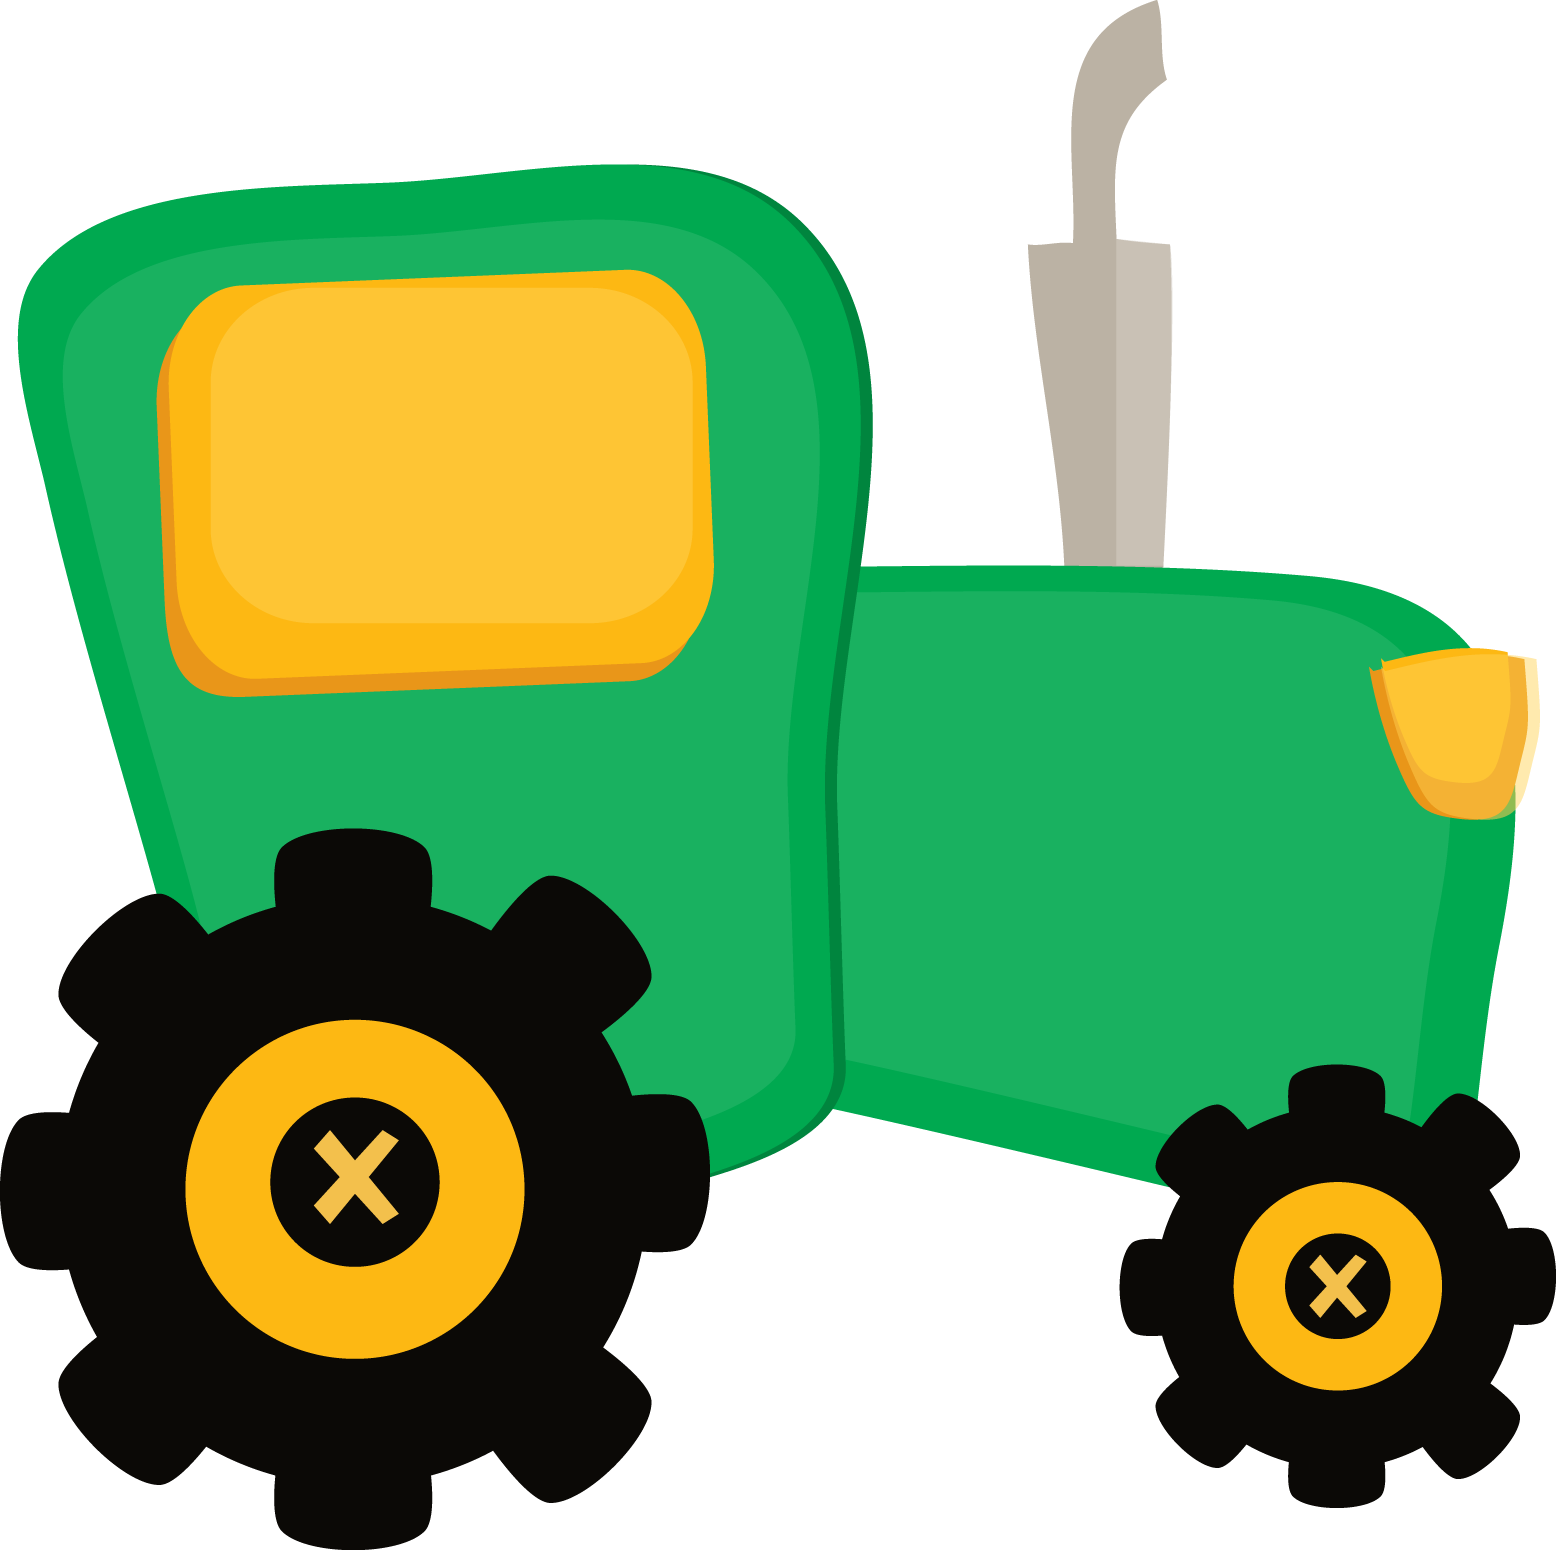 Tractor Images Clip Art - Cliparts.co